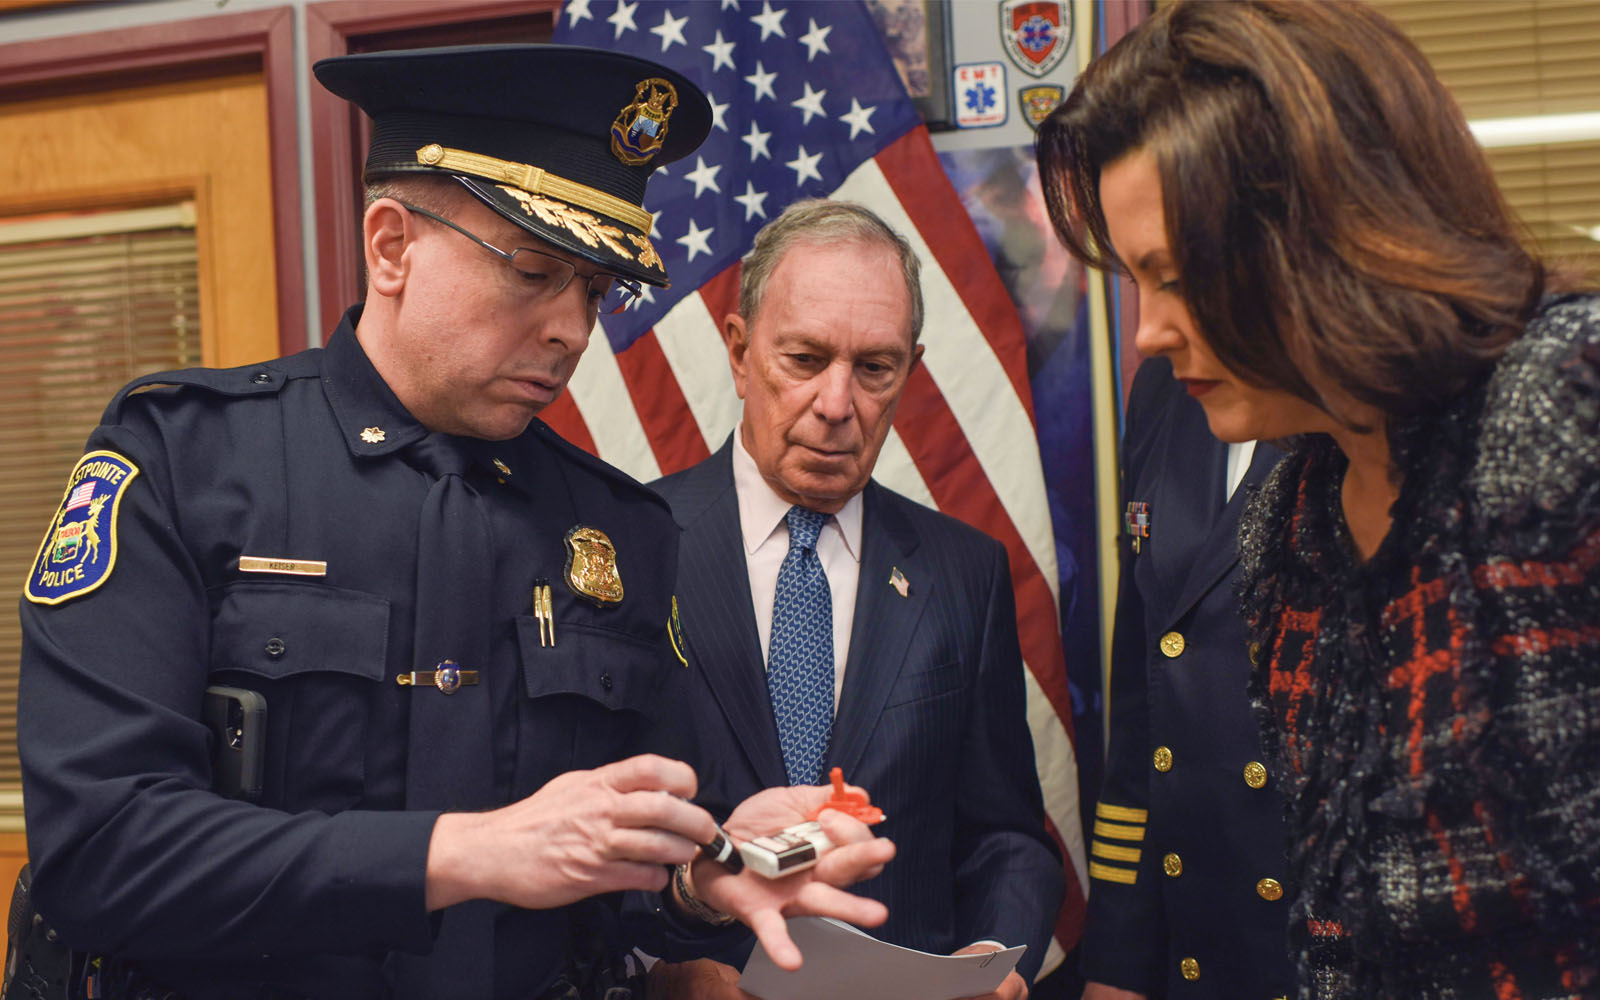 Deputy Police Chief Eric Keiser of Eastpointe, Michigan, demonstrates how to administer the overdose-reversing drug naloxone for Mike Bloomberg and Michigan Governor Gretchen Whitmer.